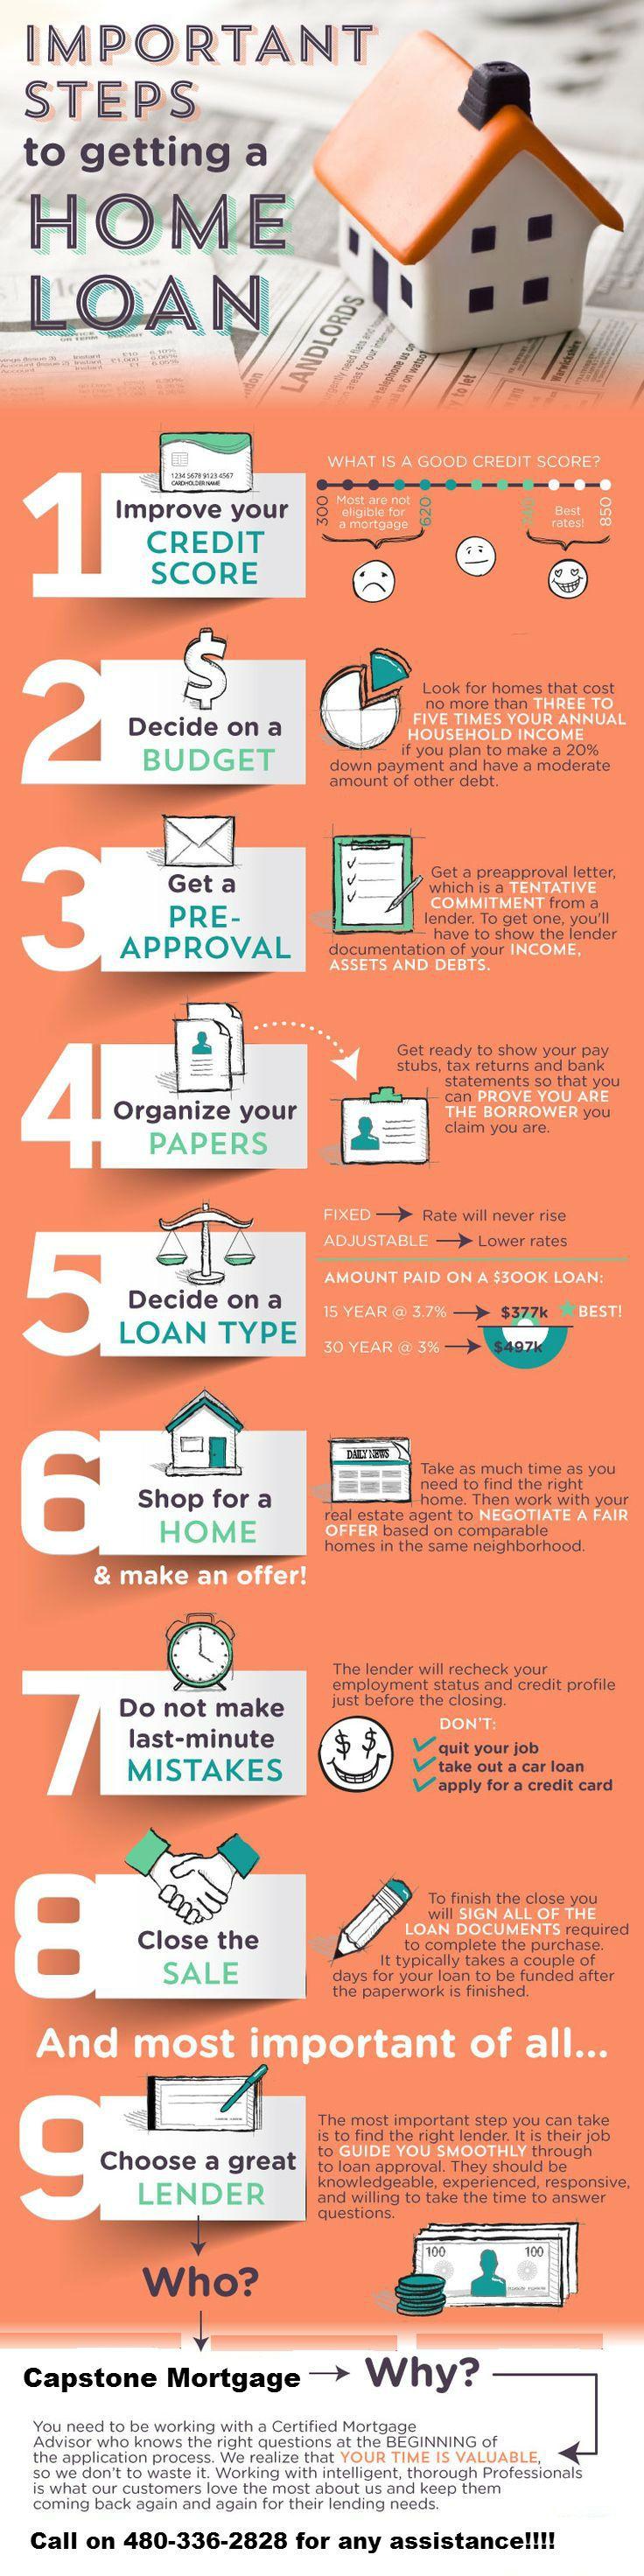 Great tips to help you on your home loan application. #mortgage #realestate